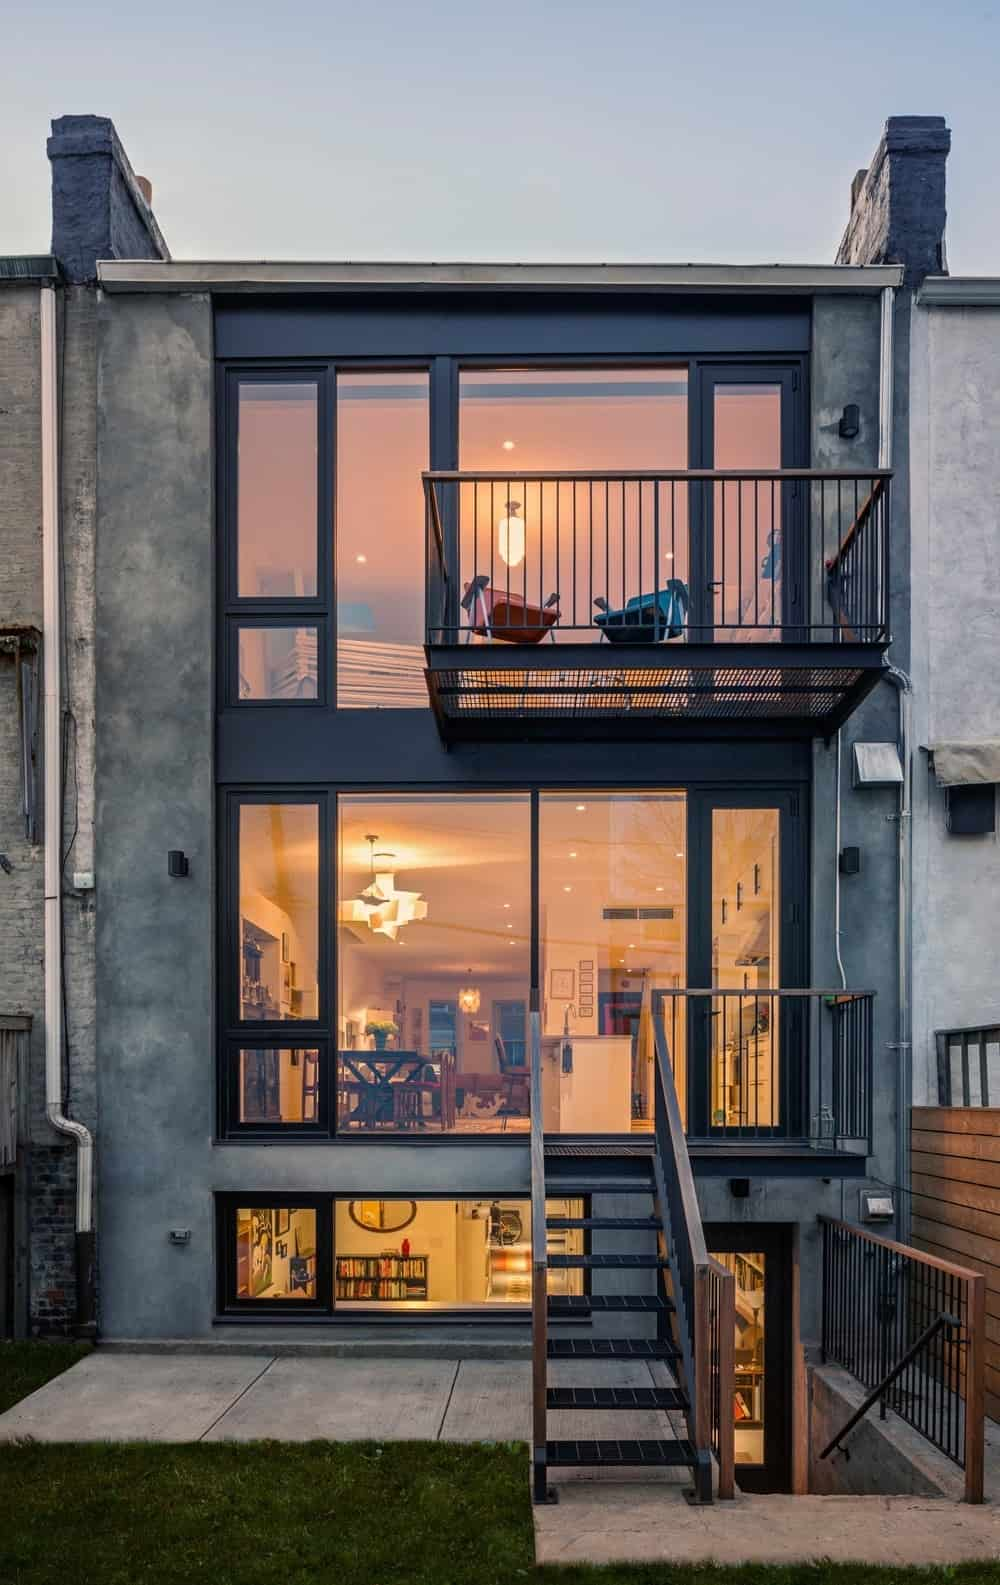 The outdoor view showcases the beautiful built of the house and the balcony area. Photo Credit: Francis Dzikowski/OTTO